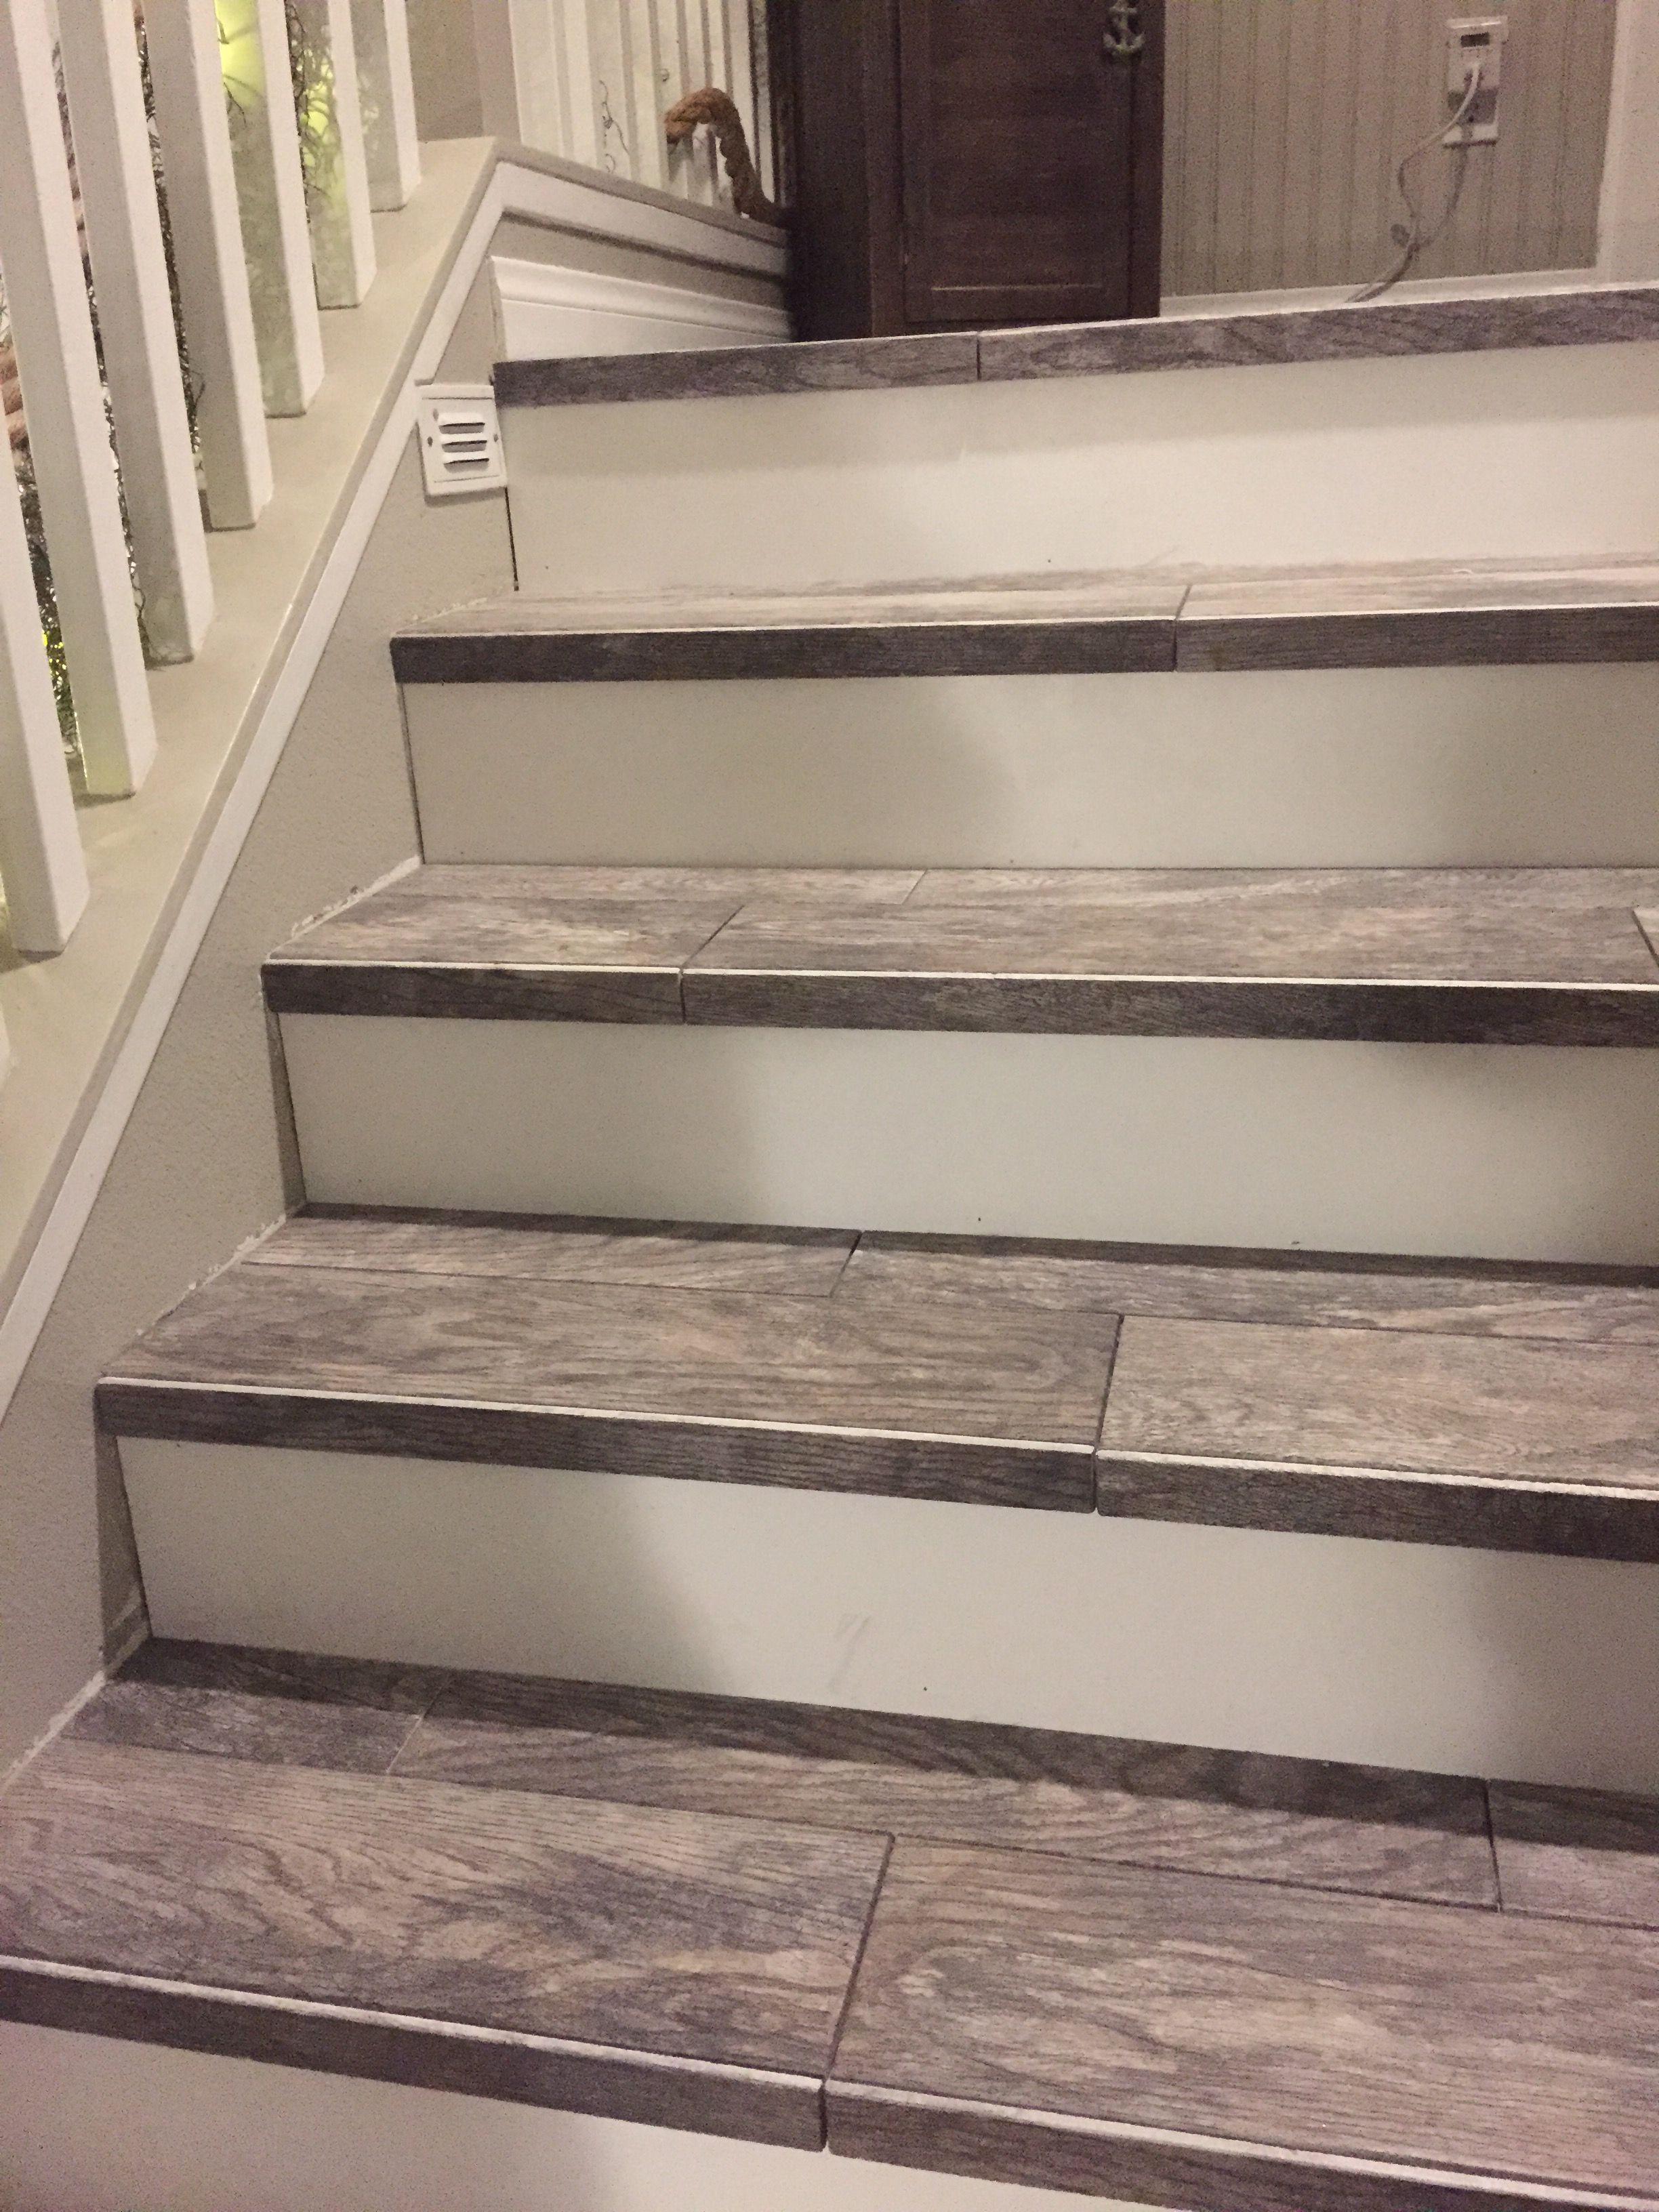 landing install beatiful to ideas coverings and how floor stair cork cons vs laminate on size pros of carpet floating nose match review for full stairs flooring staircase floors